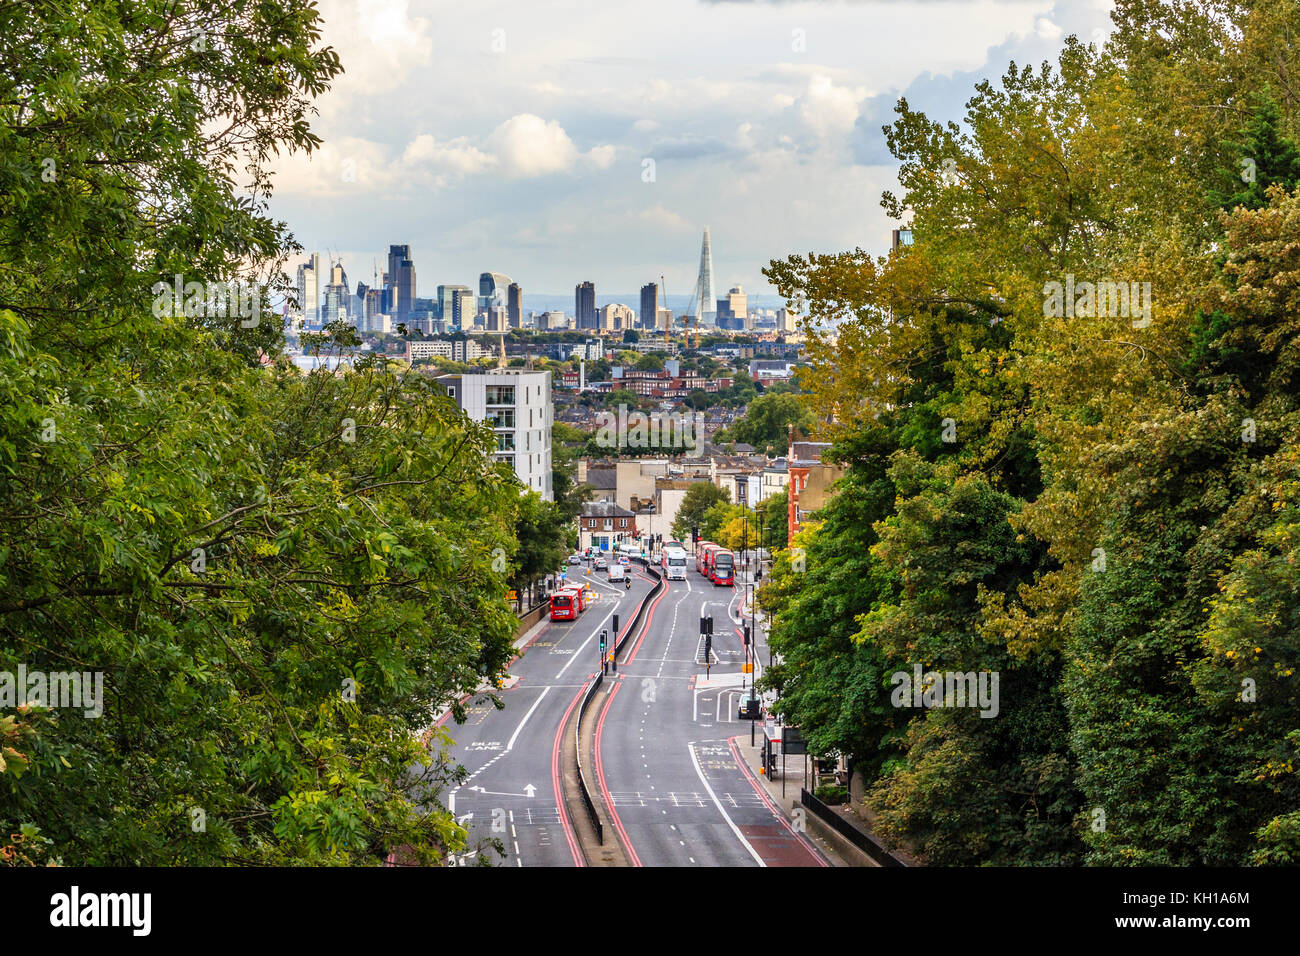 View of Archway and the City of London from Hornsey Lane Bridge, North Islington, London, UK, on a late summer evening - Stock Image